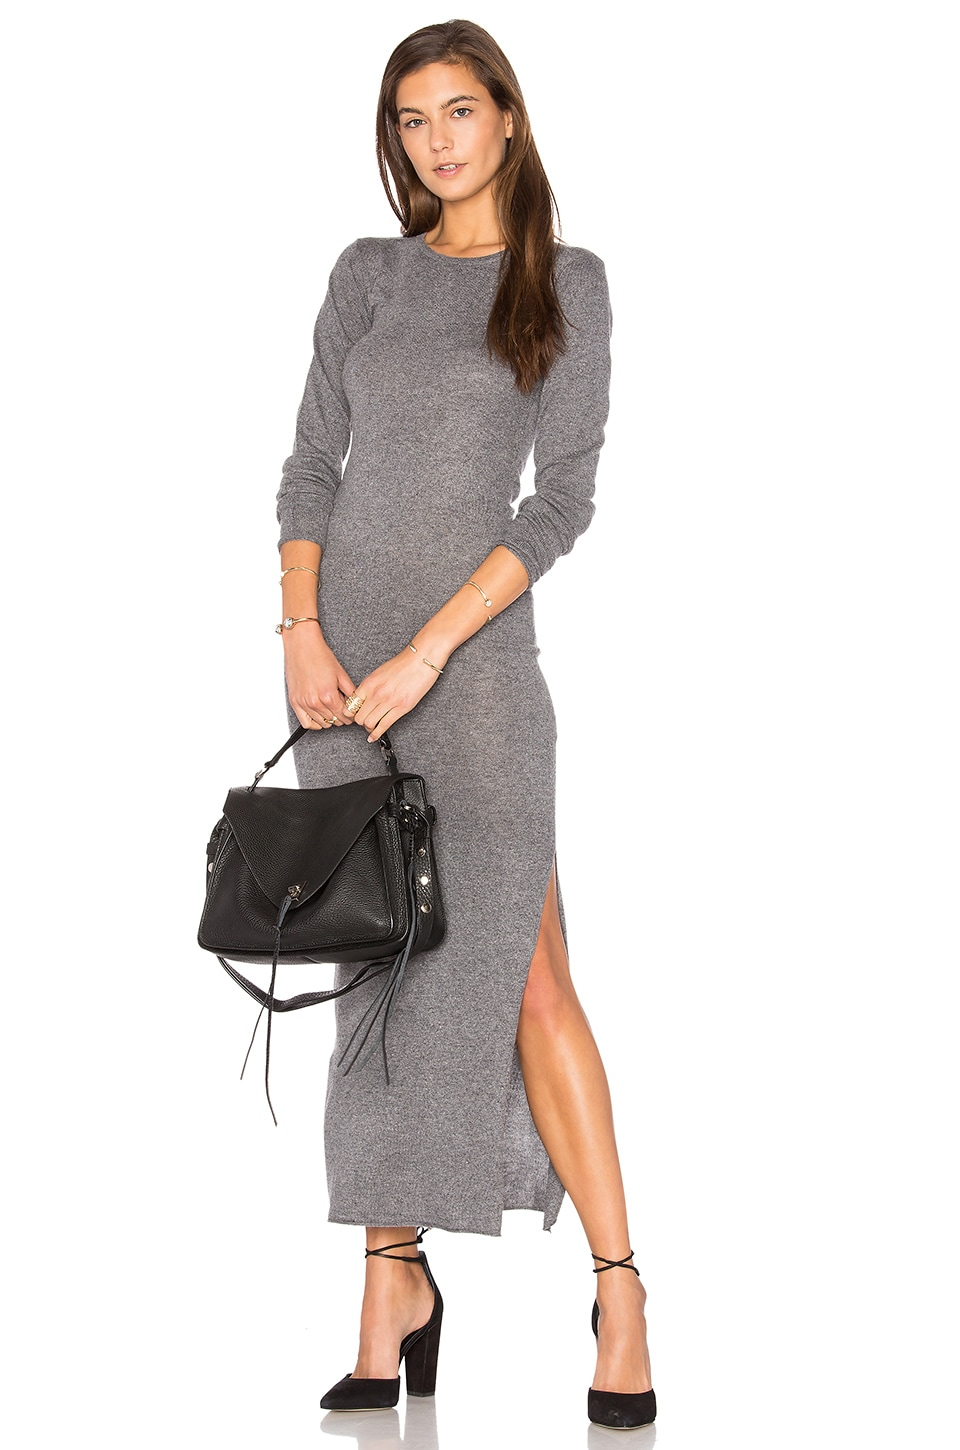 Slit Maxi Dress by Callahan